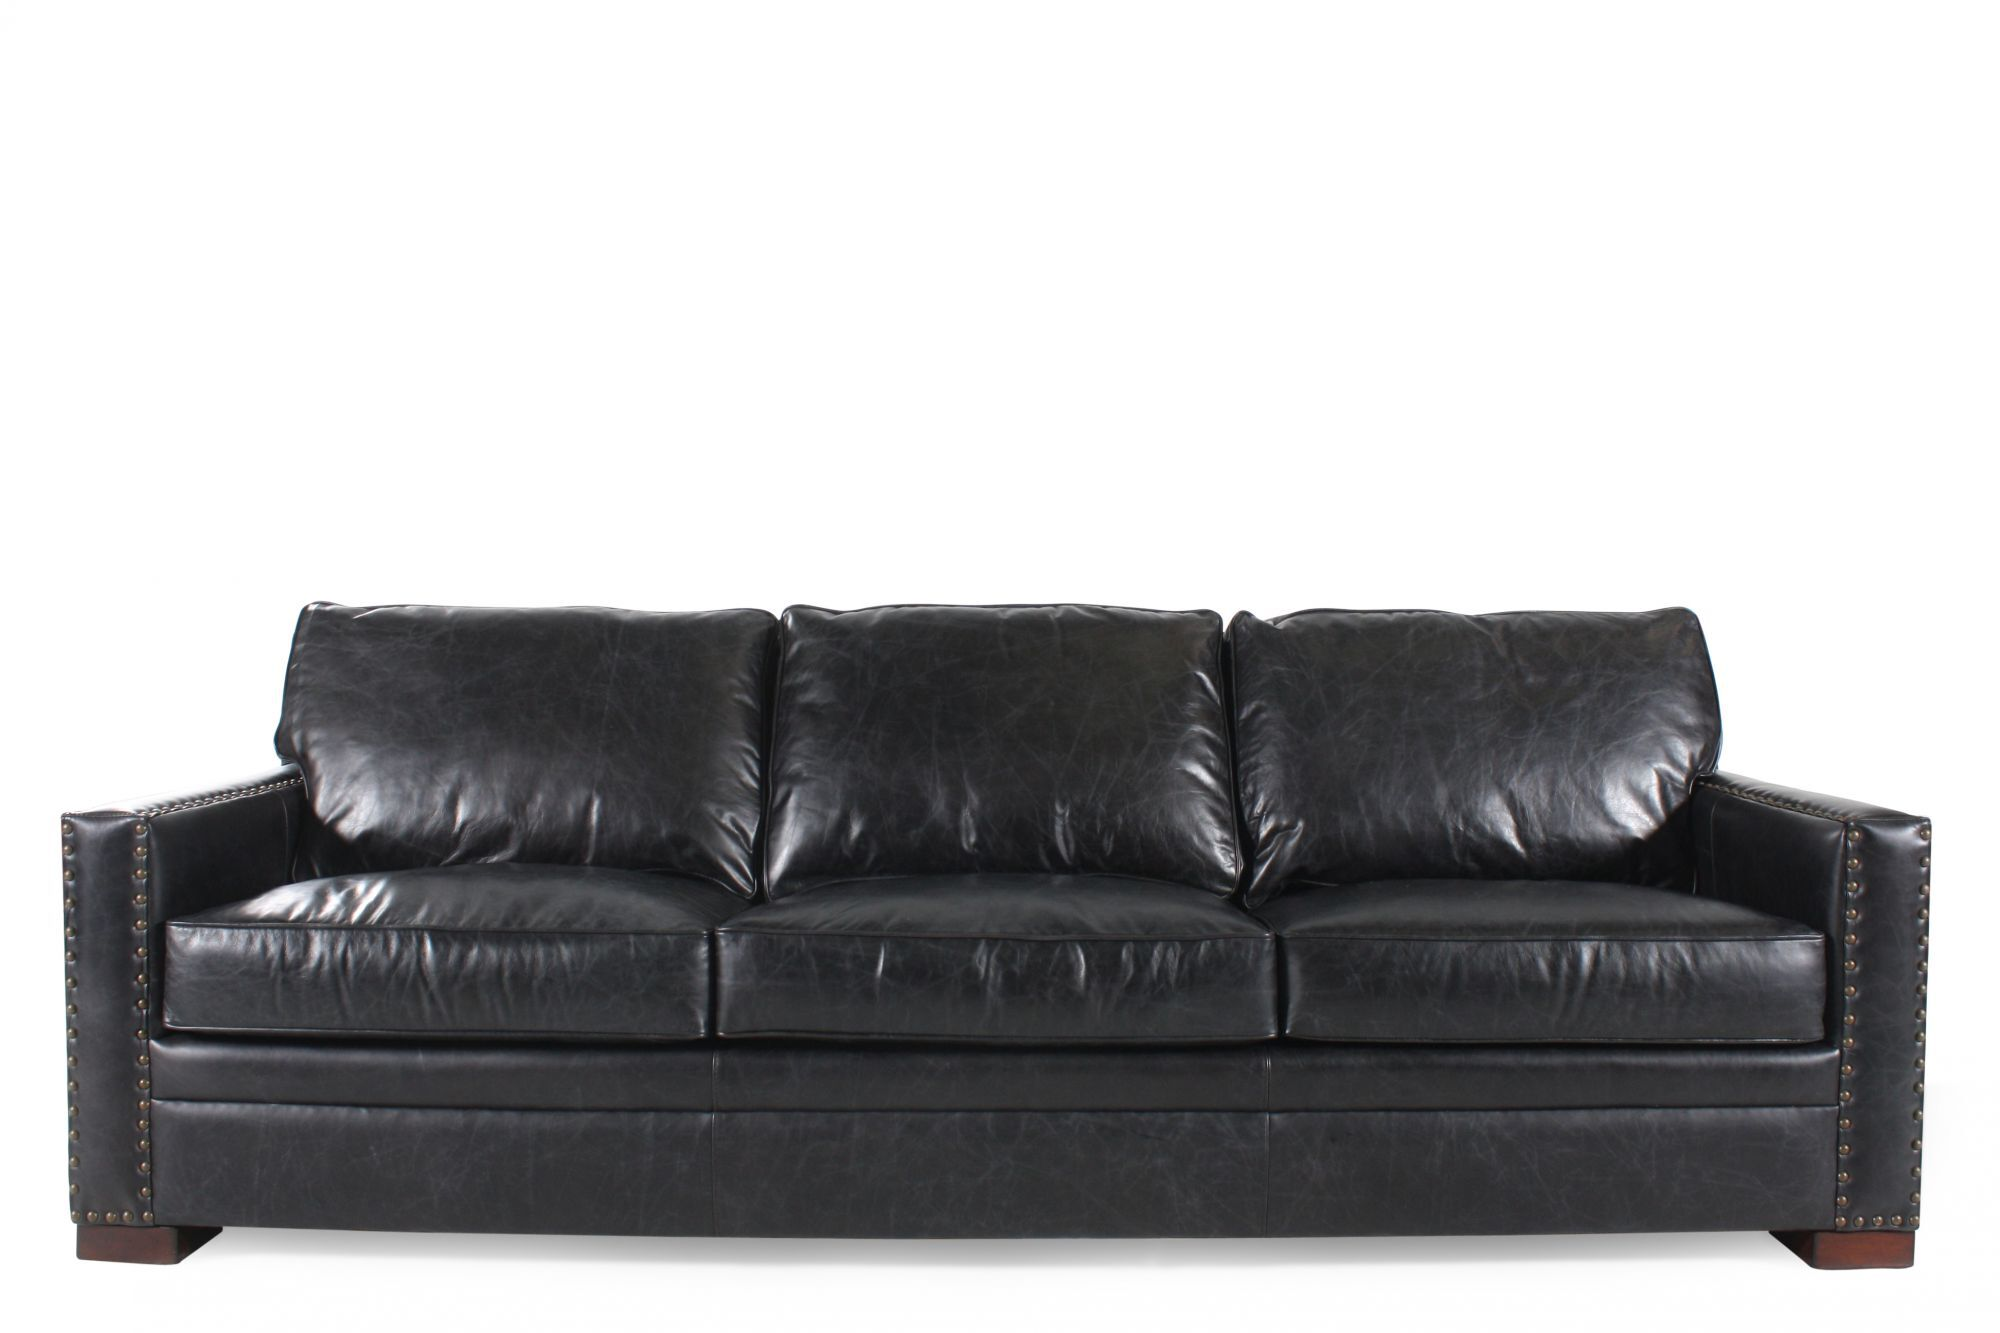 henredon sofa leather martin mathis brothers furniture